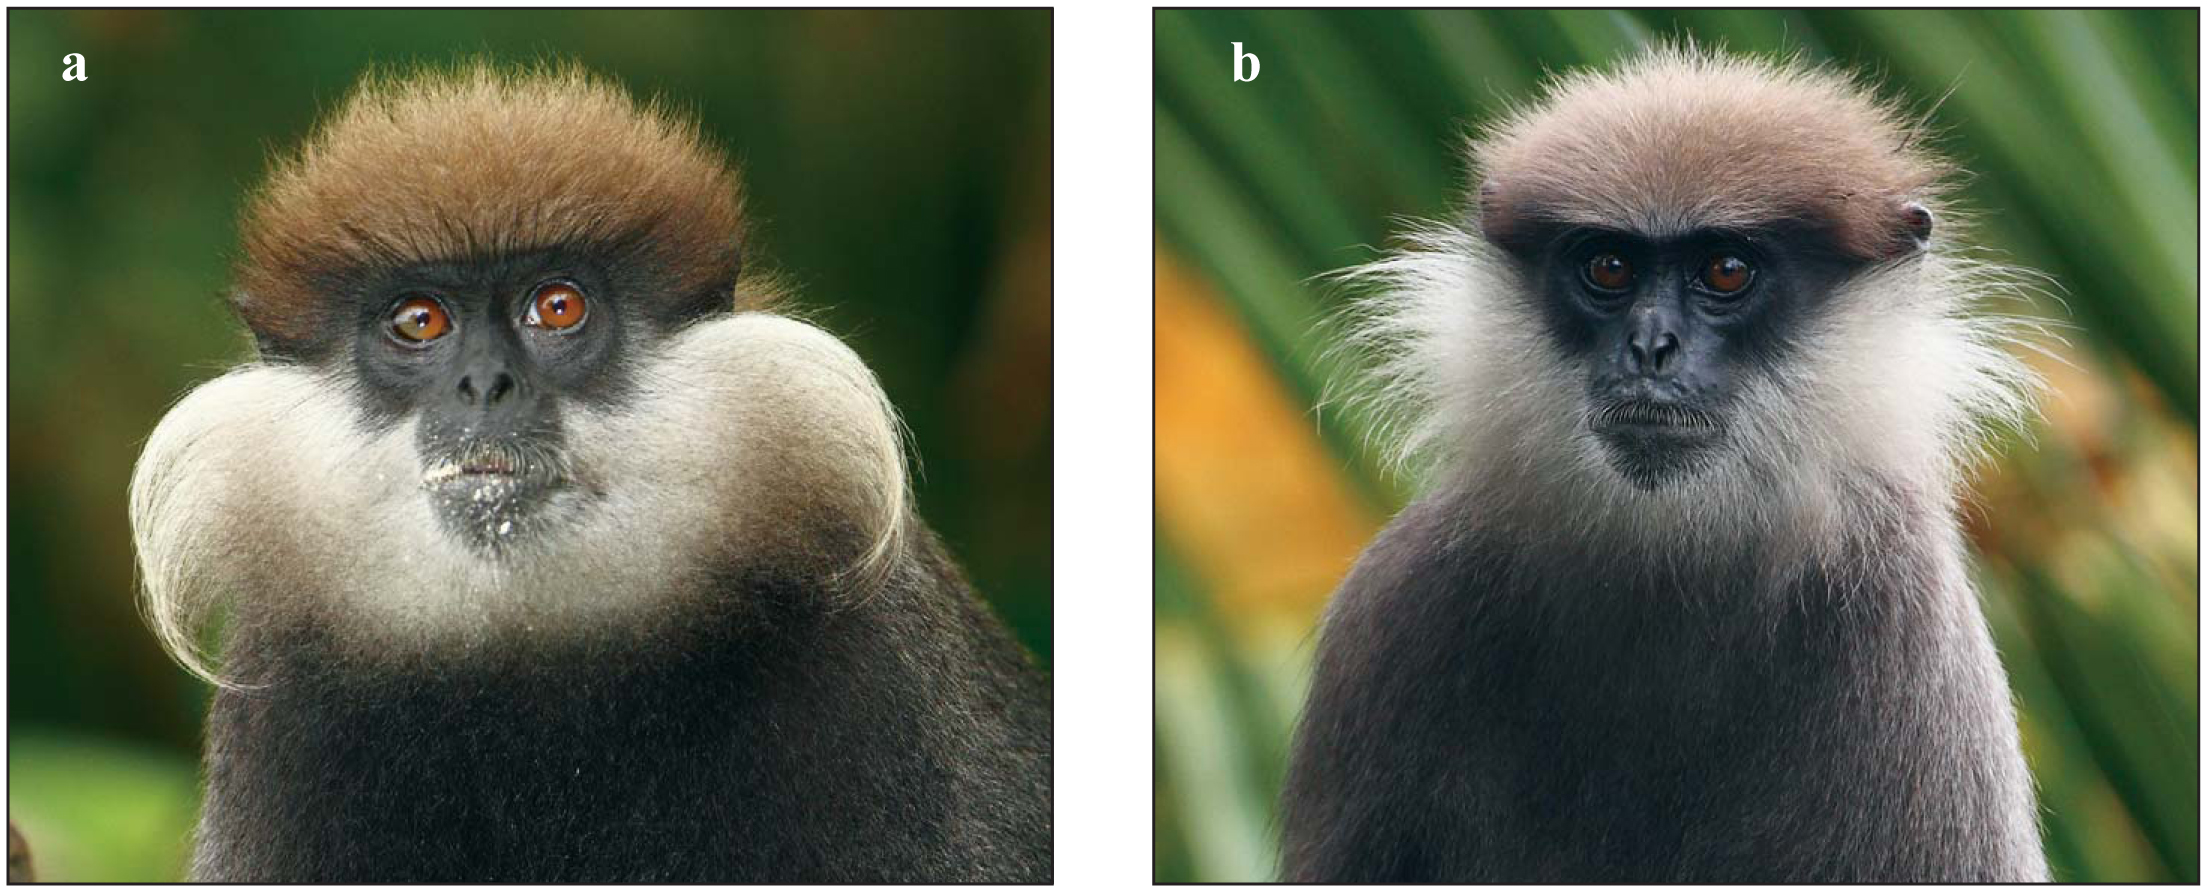 A New Color Morph of the Southern Purple-faced Langur (Semnopithecus